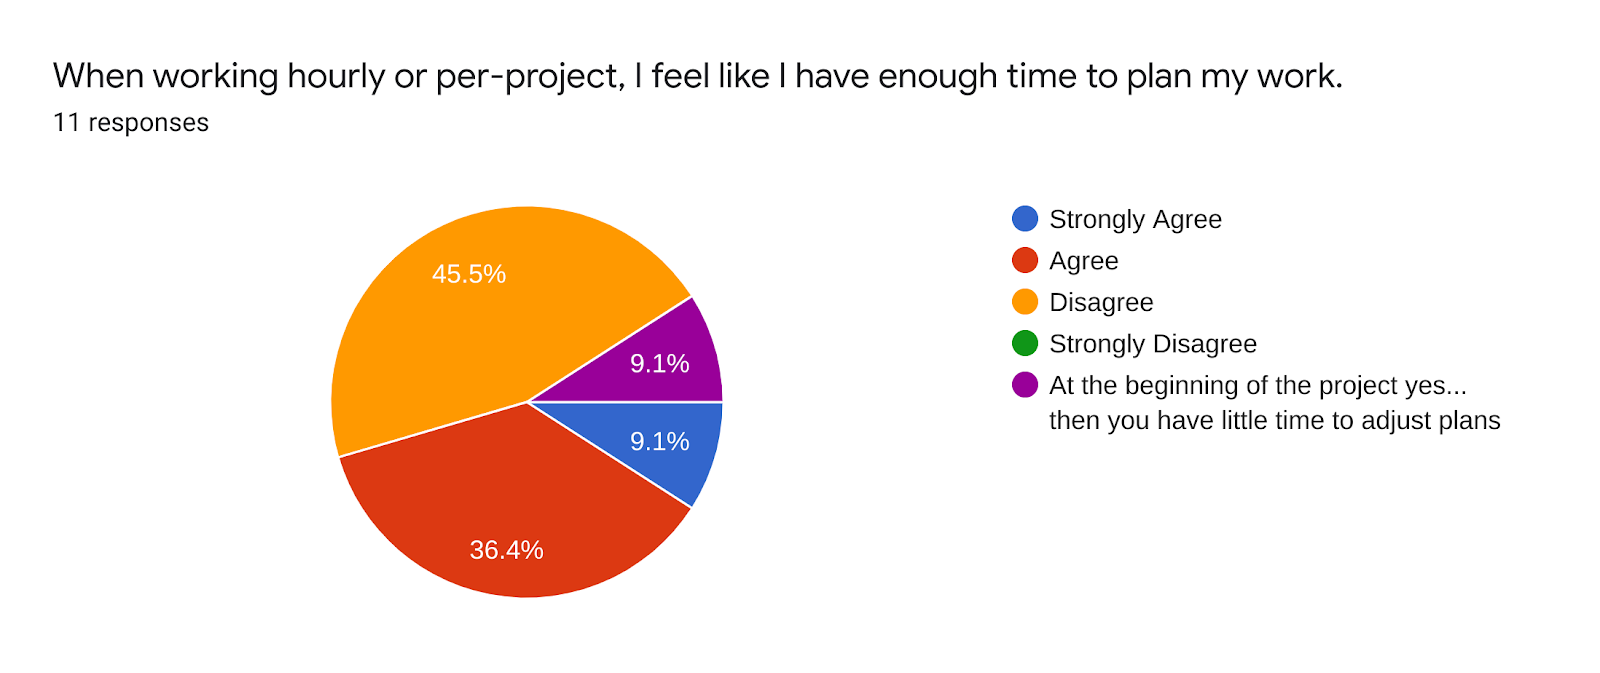 Forms response chart. Question title: When working hourly or per-project, I feel like I have enough time to plan my work.. Number of responses: 11 responses.